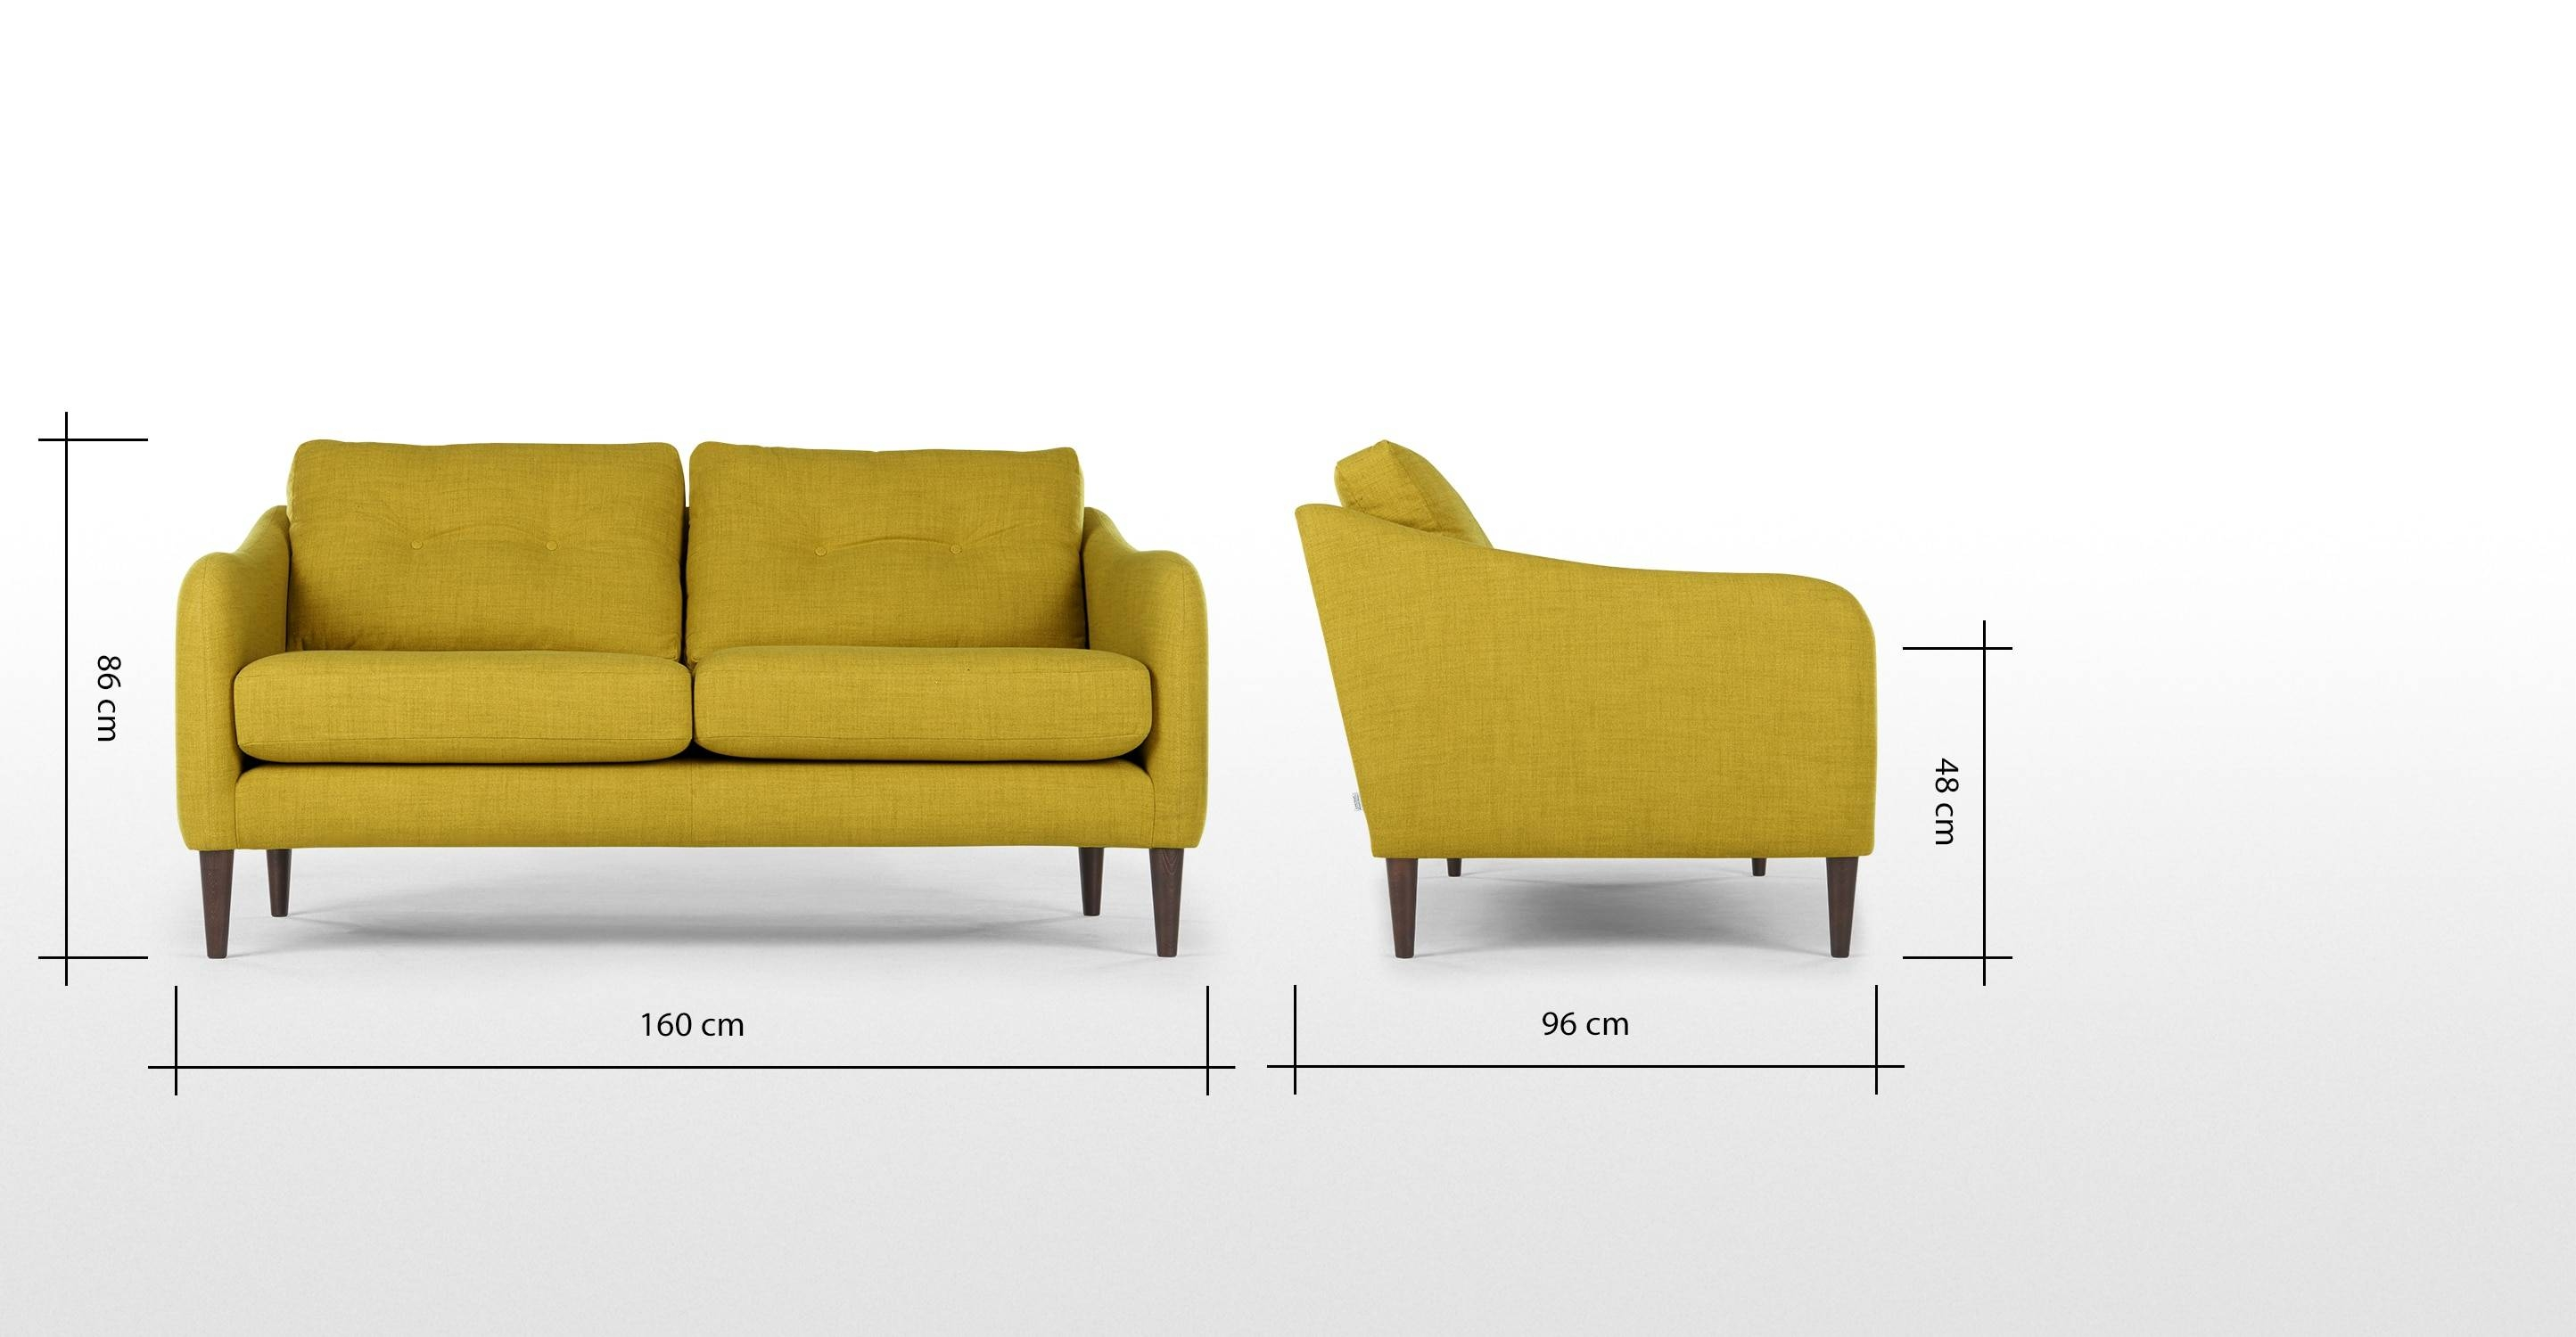 Contentterrence Conran Alban 2 Seater Sofa, Chartreuse | Made with regard to Chartreuse Sofas (Image 6 of 15)